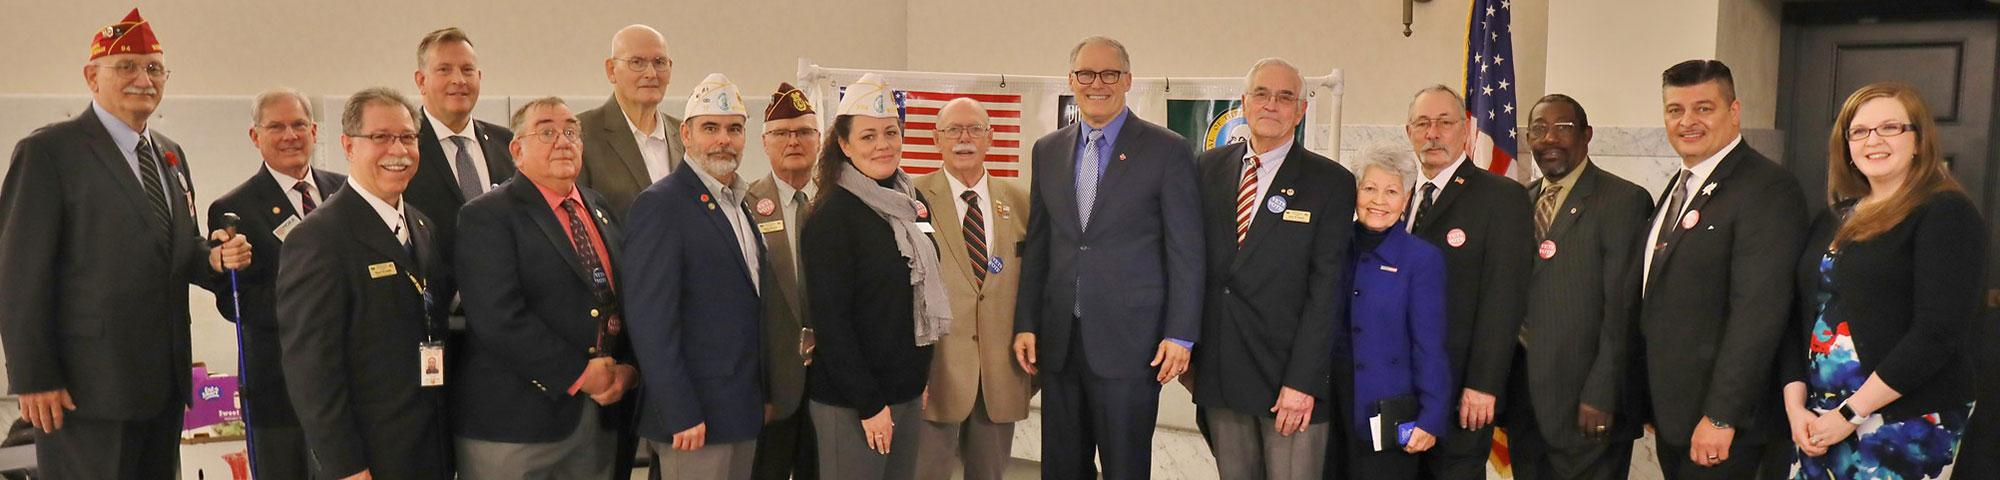 2020.01.17 Veterans Legislative Coalition (VLC) Reception at the Capitol - Special Words from Governor Inslee